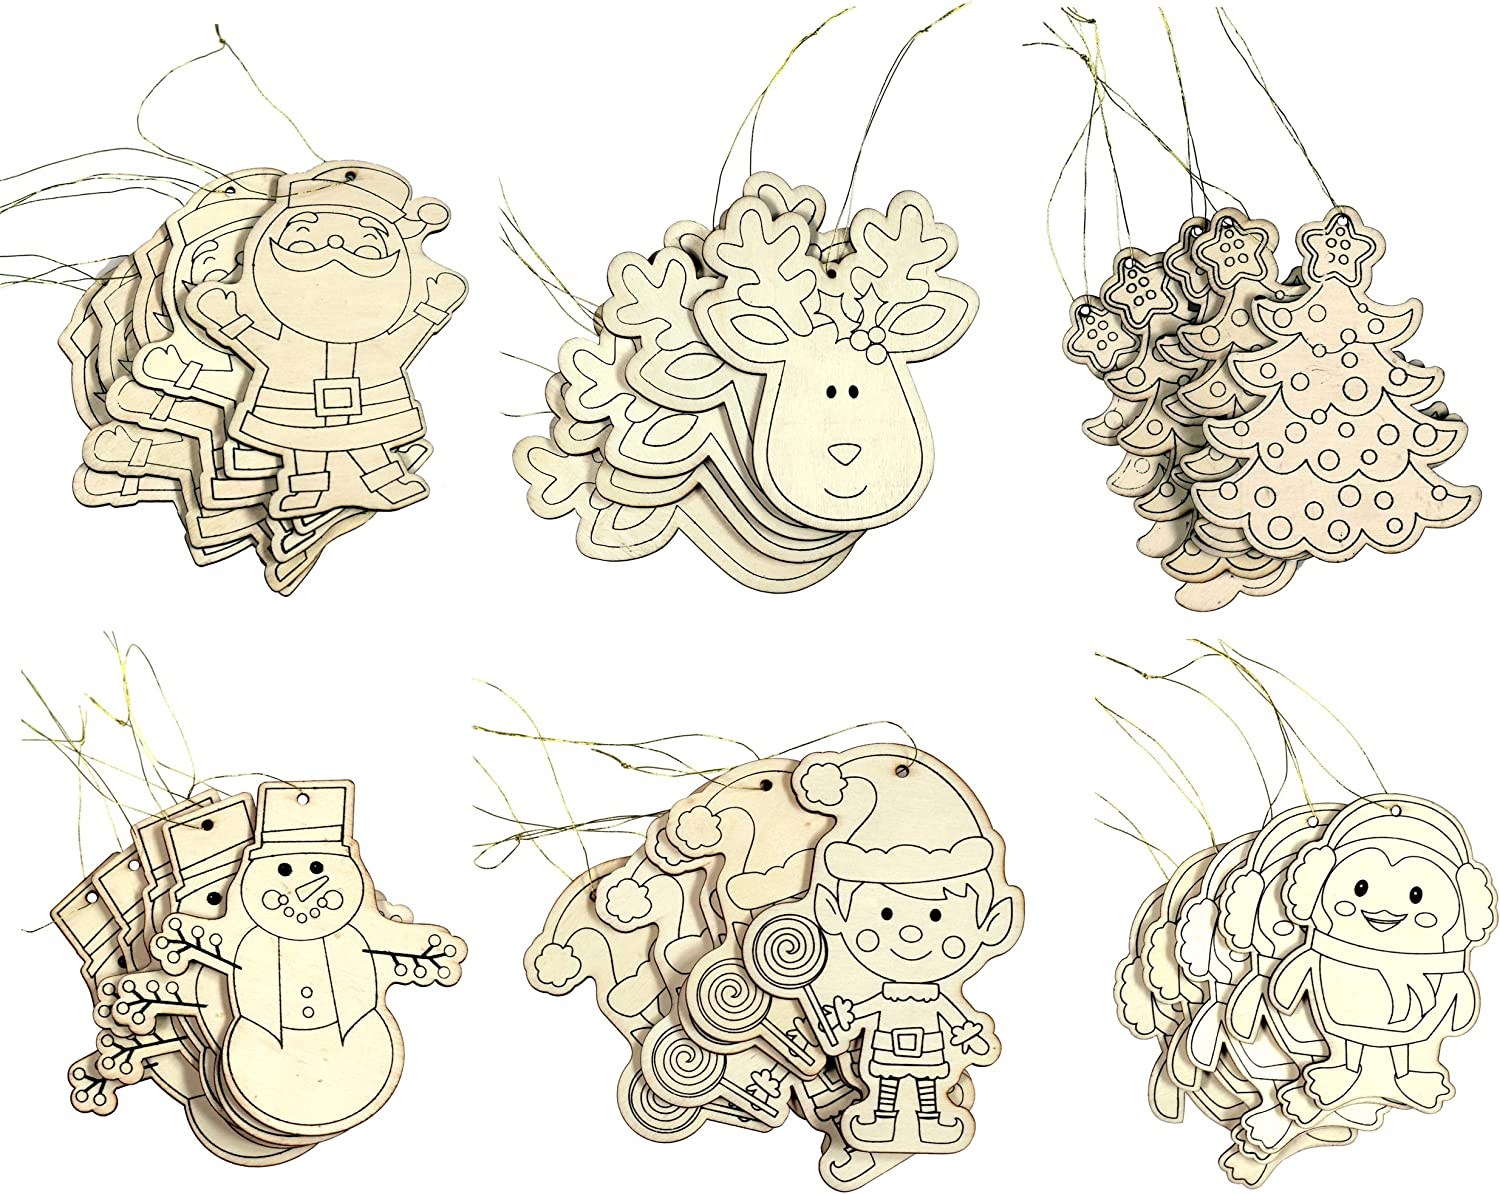 Creative Hobbies Kid Friendly DIY Holiday Christmas Themed Ornaments -Decorate Your Own - Contains 30 Ornaments Ready to Color or Paint